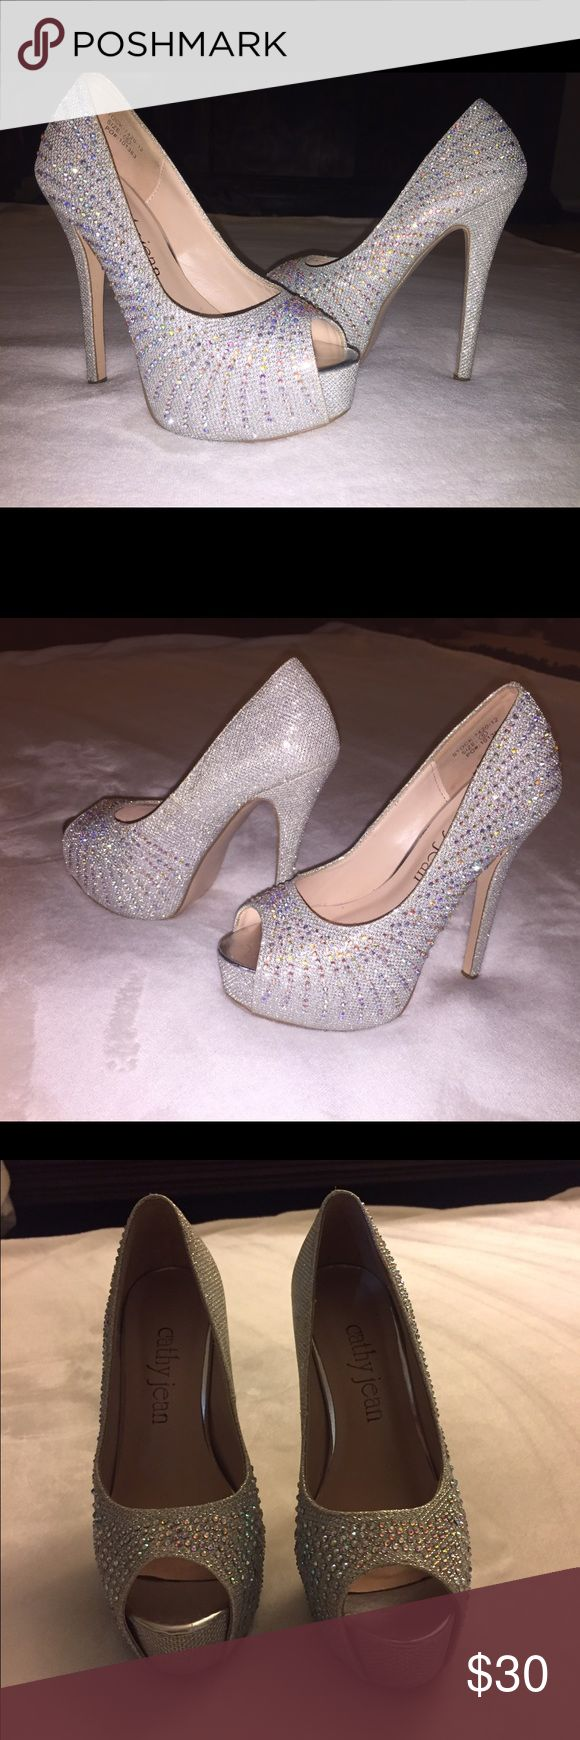 Cathy Jean silver heels Size 5 Cathy jean silver peep toe heels true to size. I used them once for prom, they honestly make your outfit look amazing. Rhinestones are intact. Only sign of wear is on soles. They are perfect for any special occasion Cathy Jean Shoes Heels